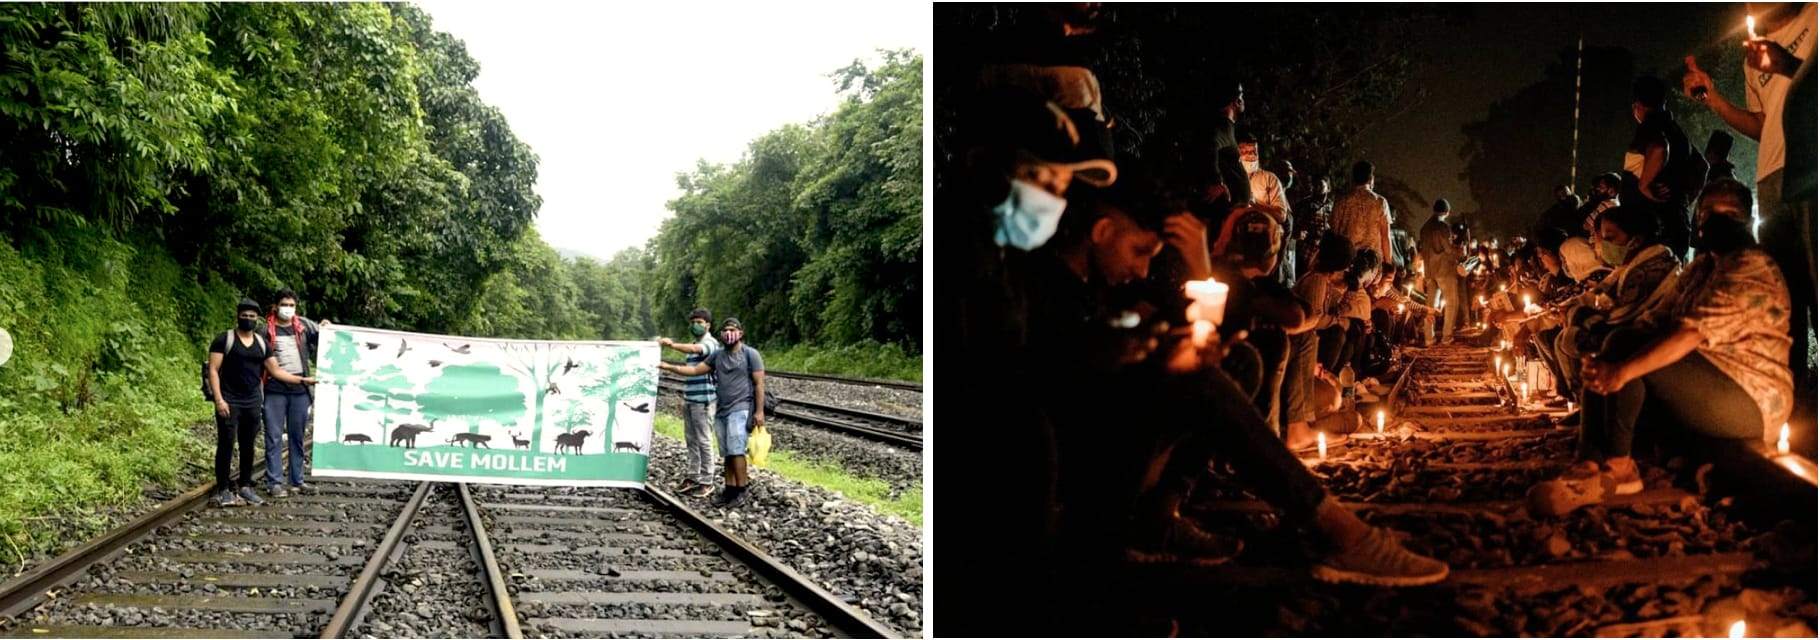 (Left) Residents of Goa held a peaceful march at Mollem and Collem on August 15, 2020. (Right) On November 5, 2020, over 3,000 citizens gathered with torches, lanterns and candles at Chandor, one of the medieval capitals of Goa, to protest against the expansion of the railway line through protected areas. Photos: Dhiraj Govekar (right) and Amche Mollem (Left)